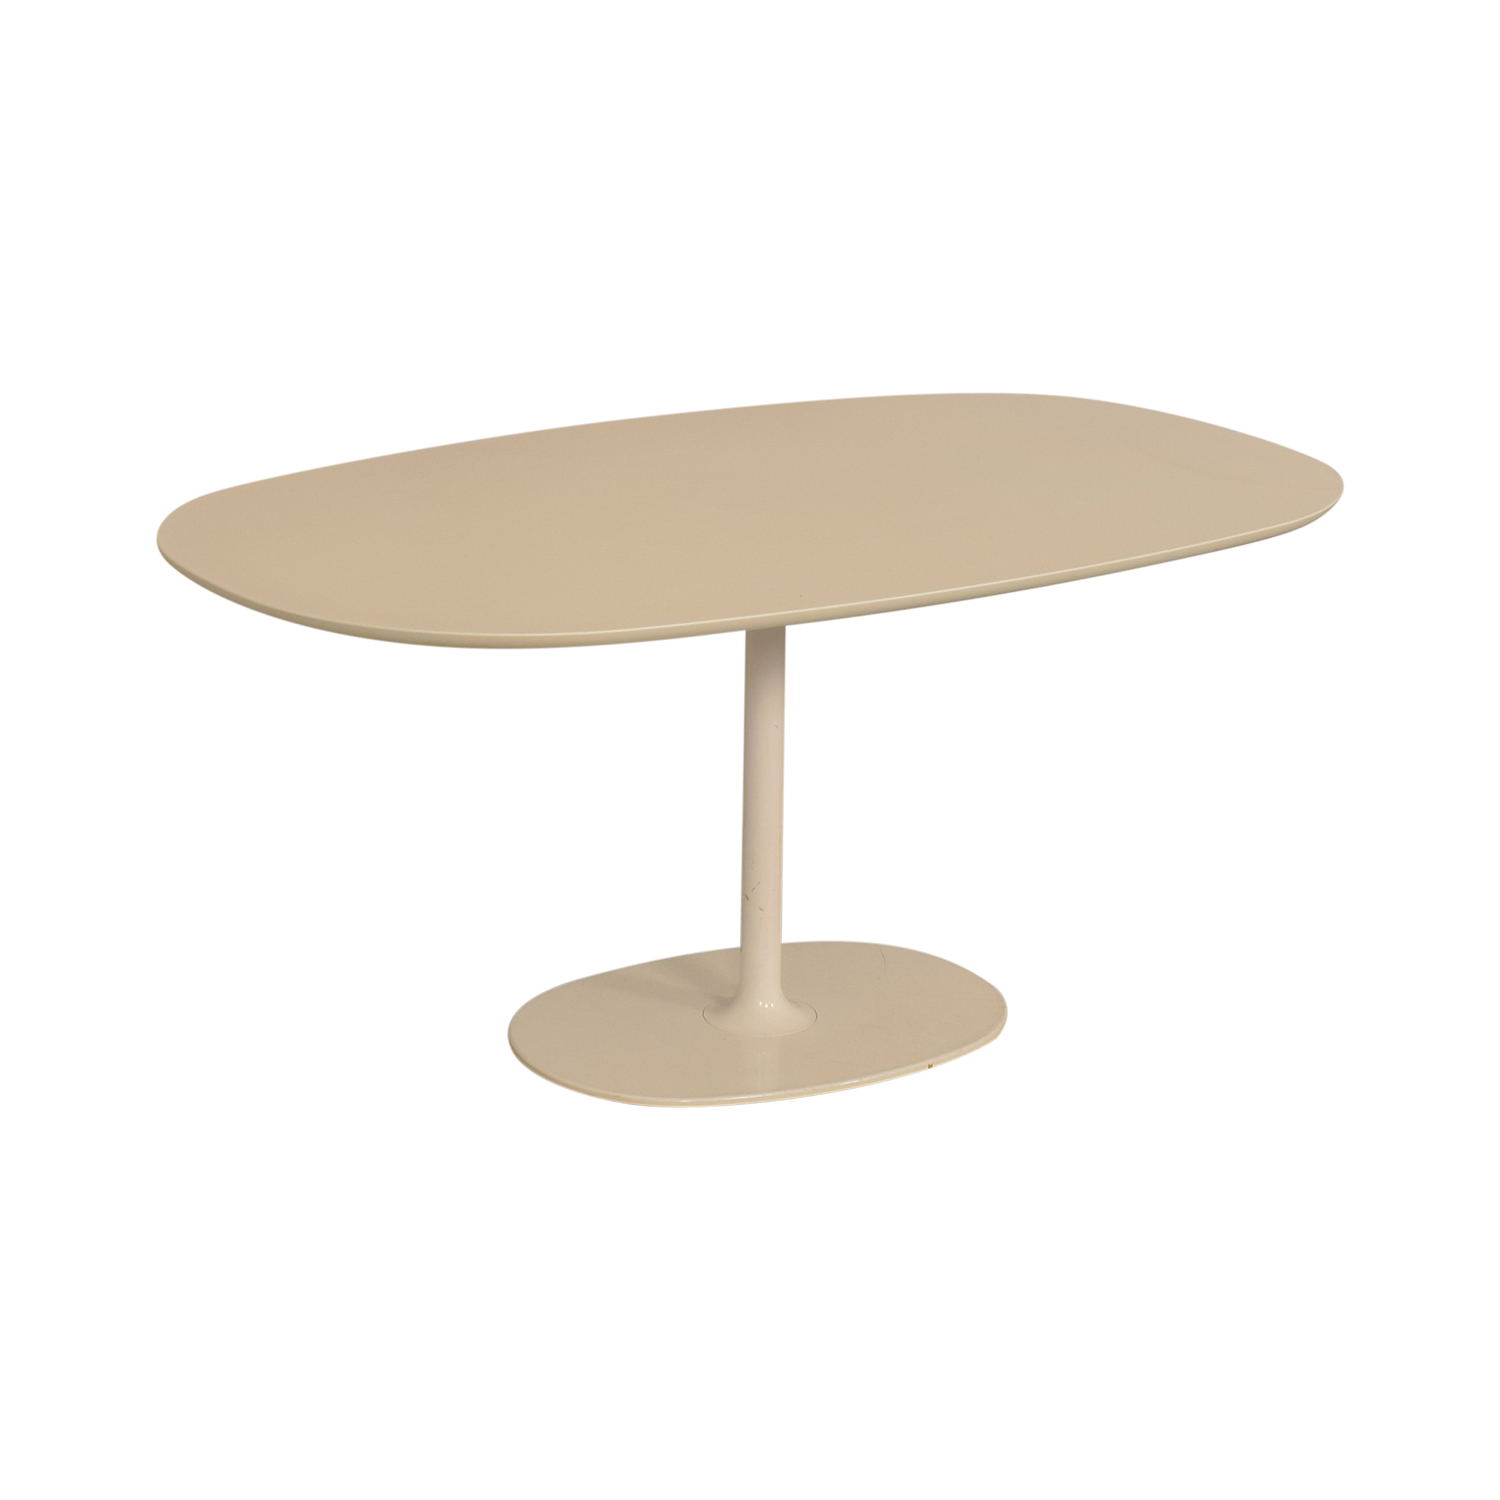 Arper Arper Dizzie Oval Dining Table Tables